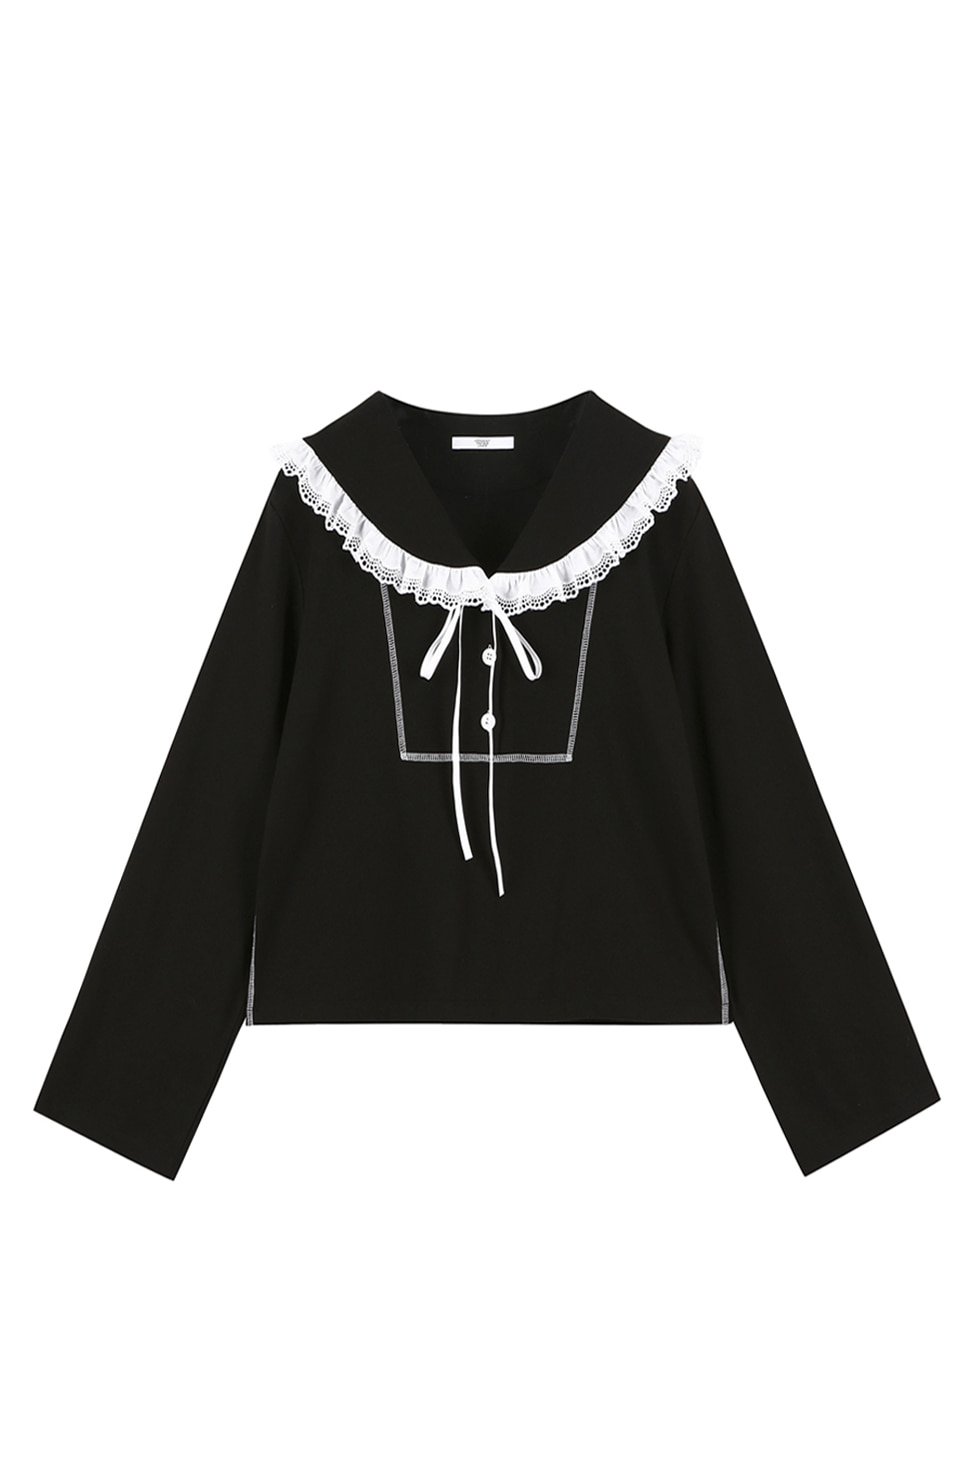 COTTON RUFFLE JERSEY TOP - BLACK